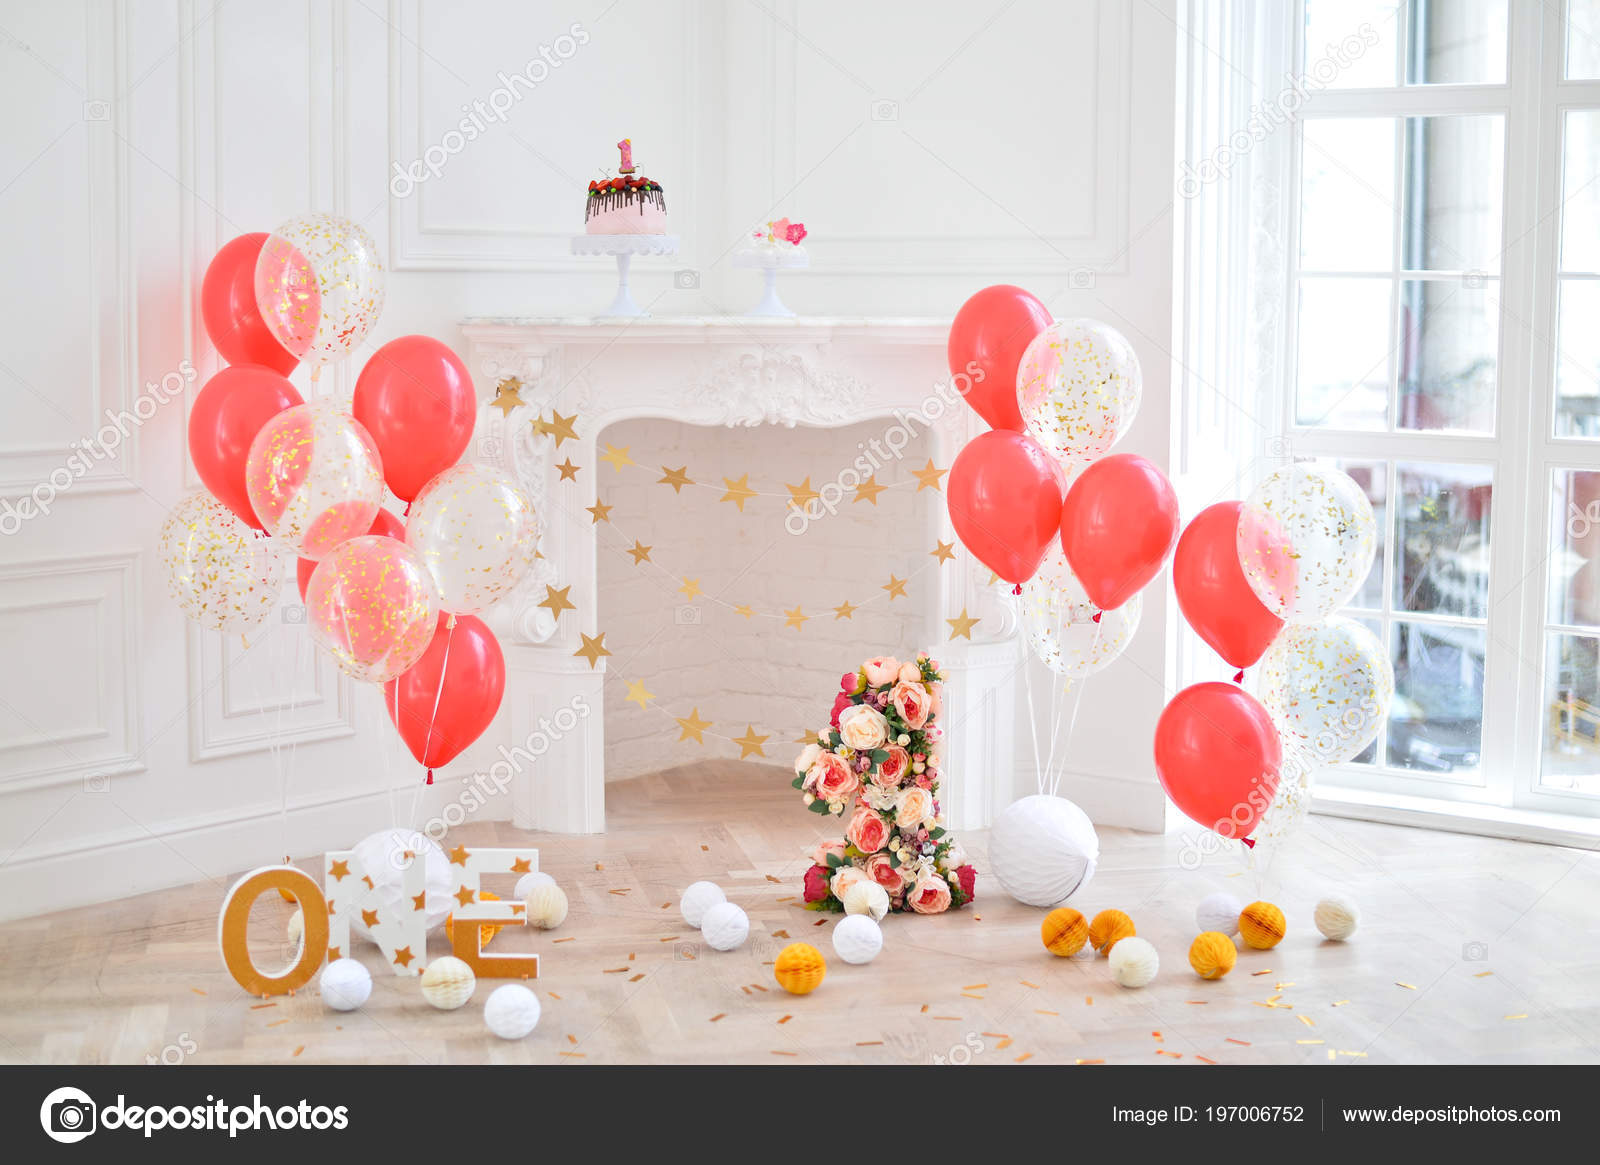 Decorations For Birthday Party A Lot Of Cakes Balloons Red And White Colors One Year